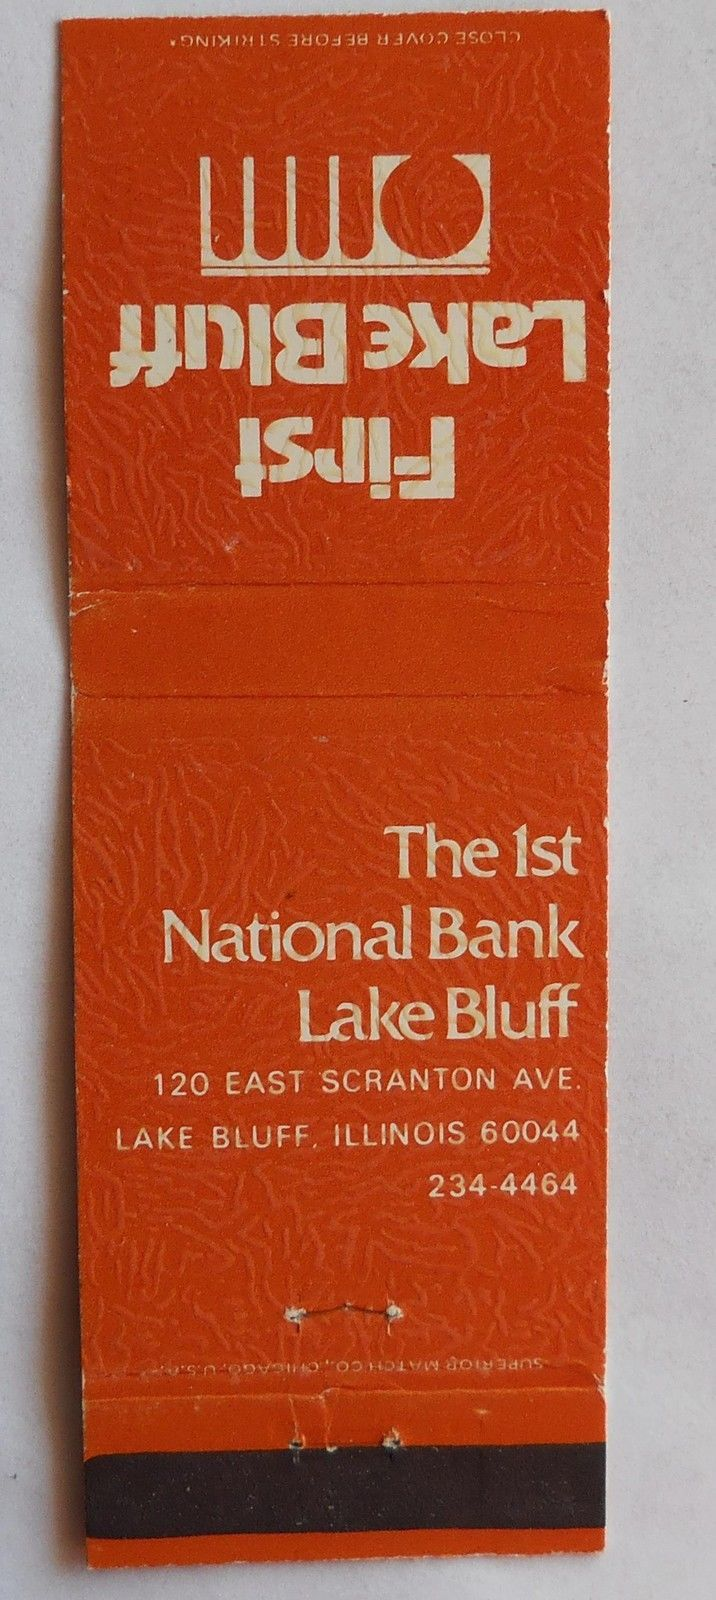 298. 1ST NATIONAL BANK LAKE BLUFF, LAKE BLUFF,IL Lake